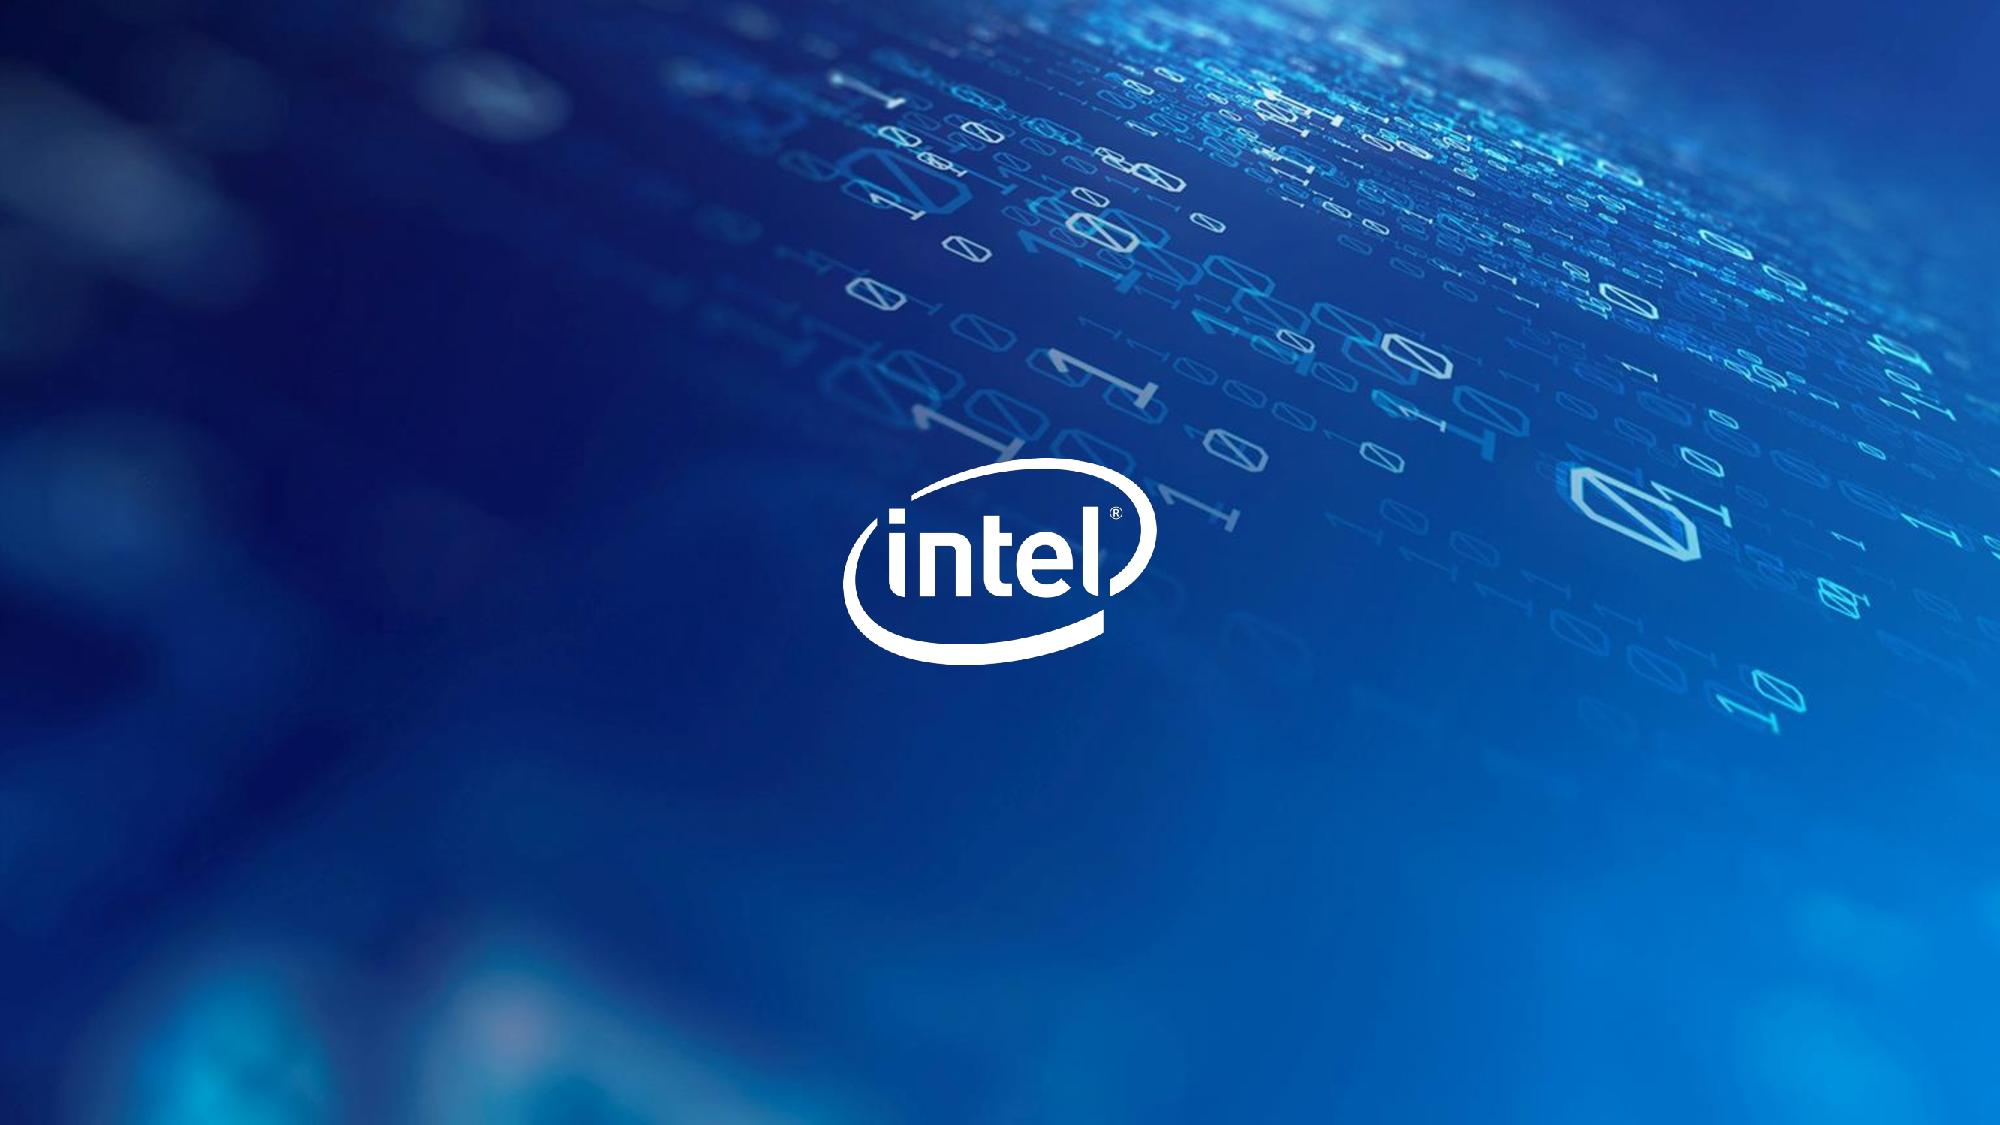 Intel Confirms 10nm CPUs in Fall 2019, New 14nm Products